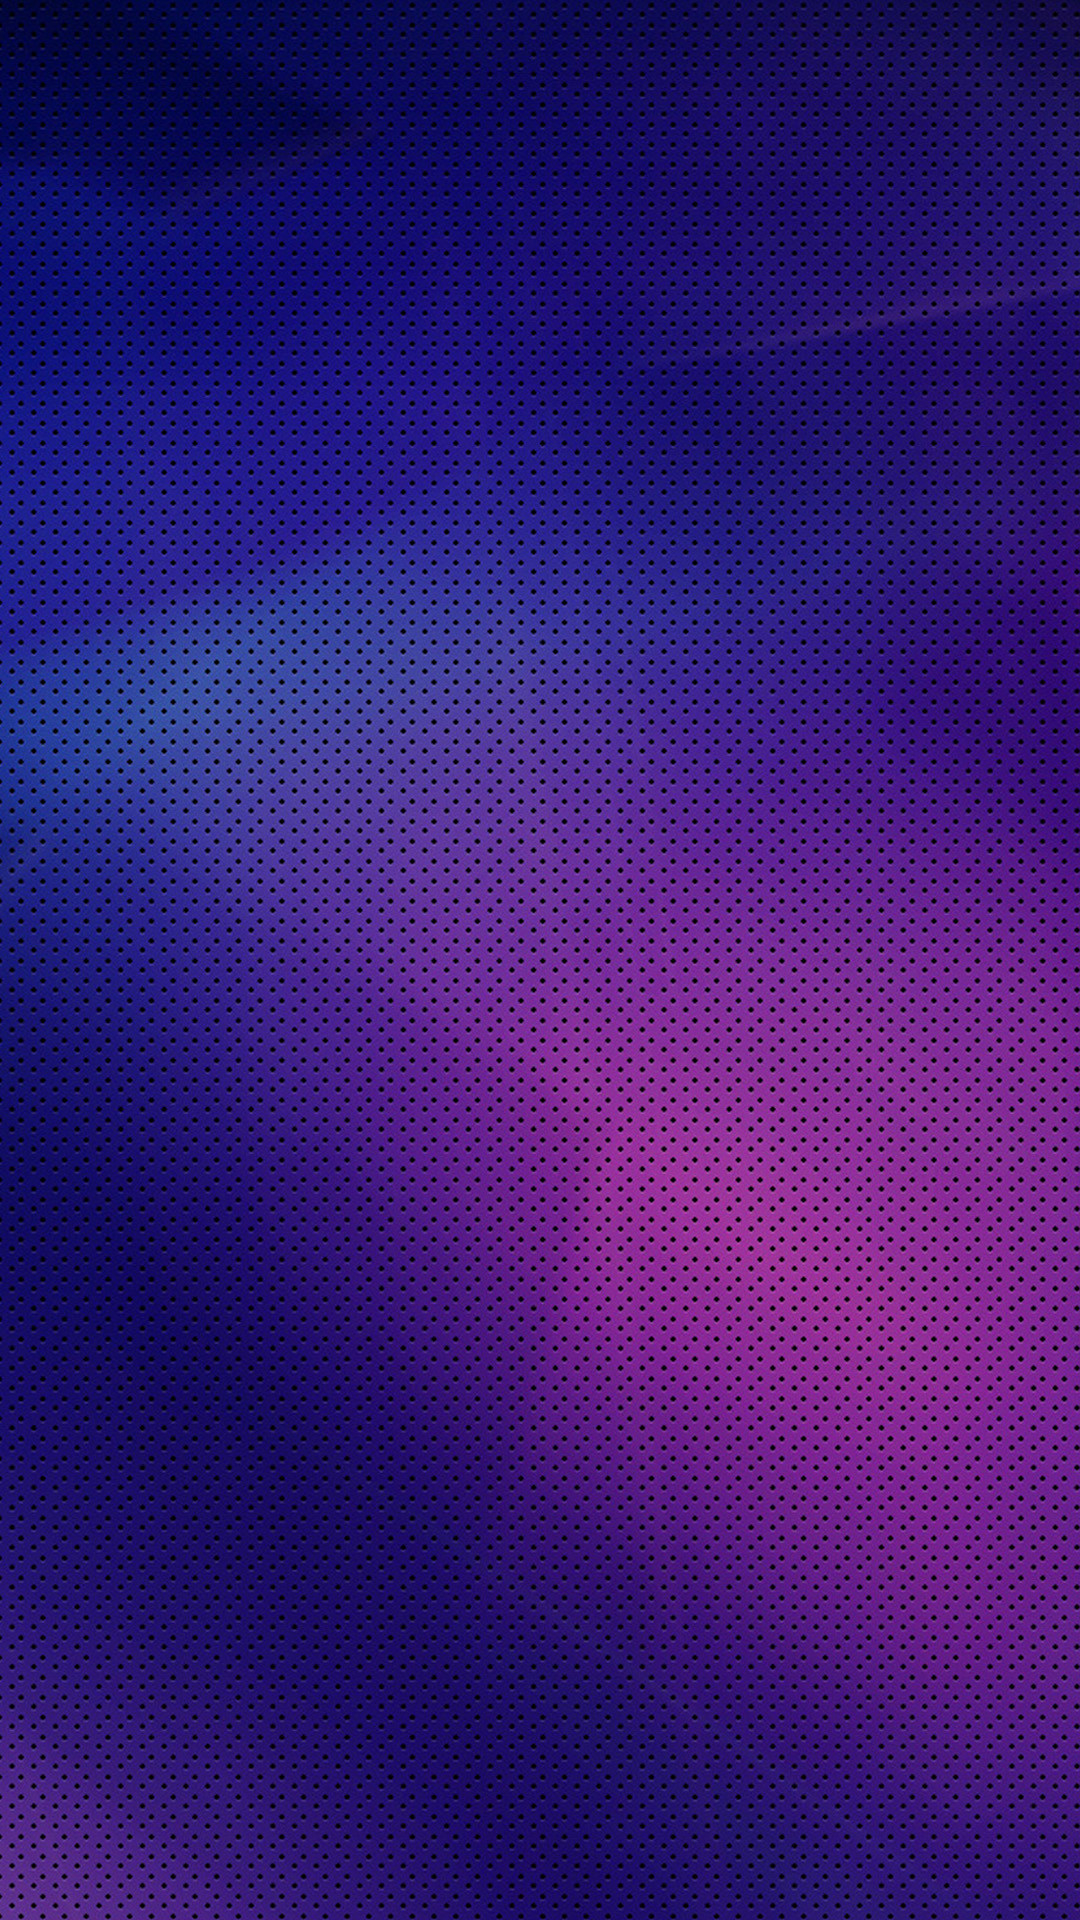 1080x1920 Blue and Mauve Wallpaper - WallpaperSafari